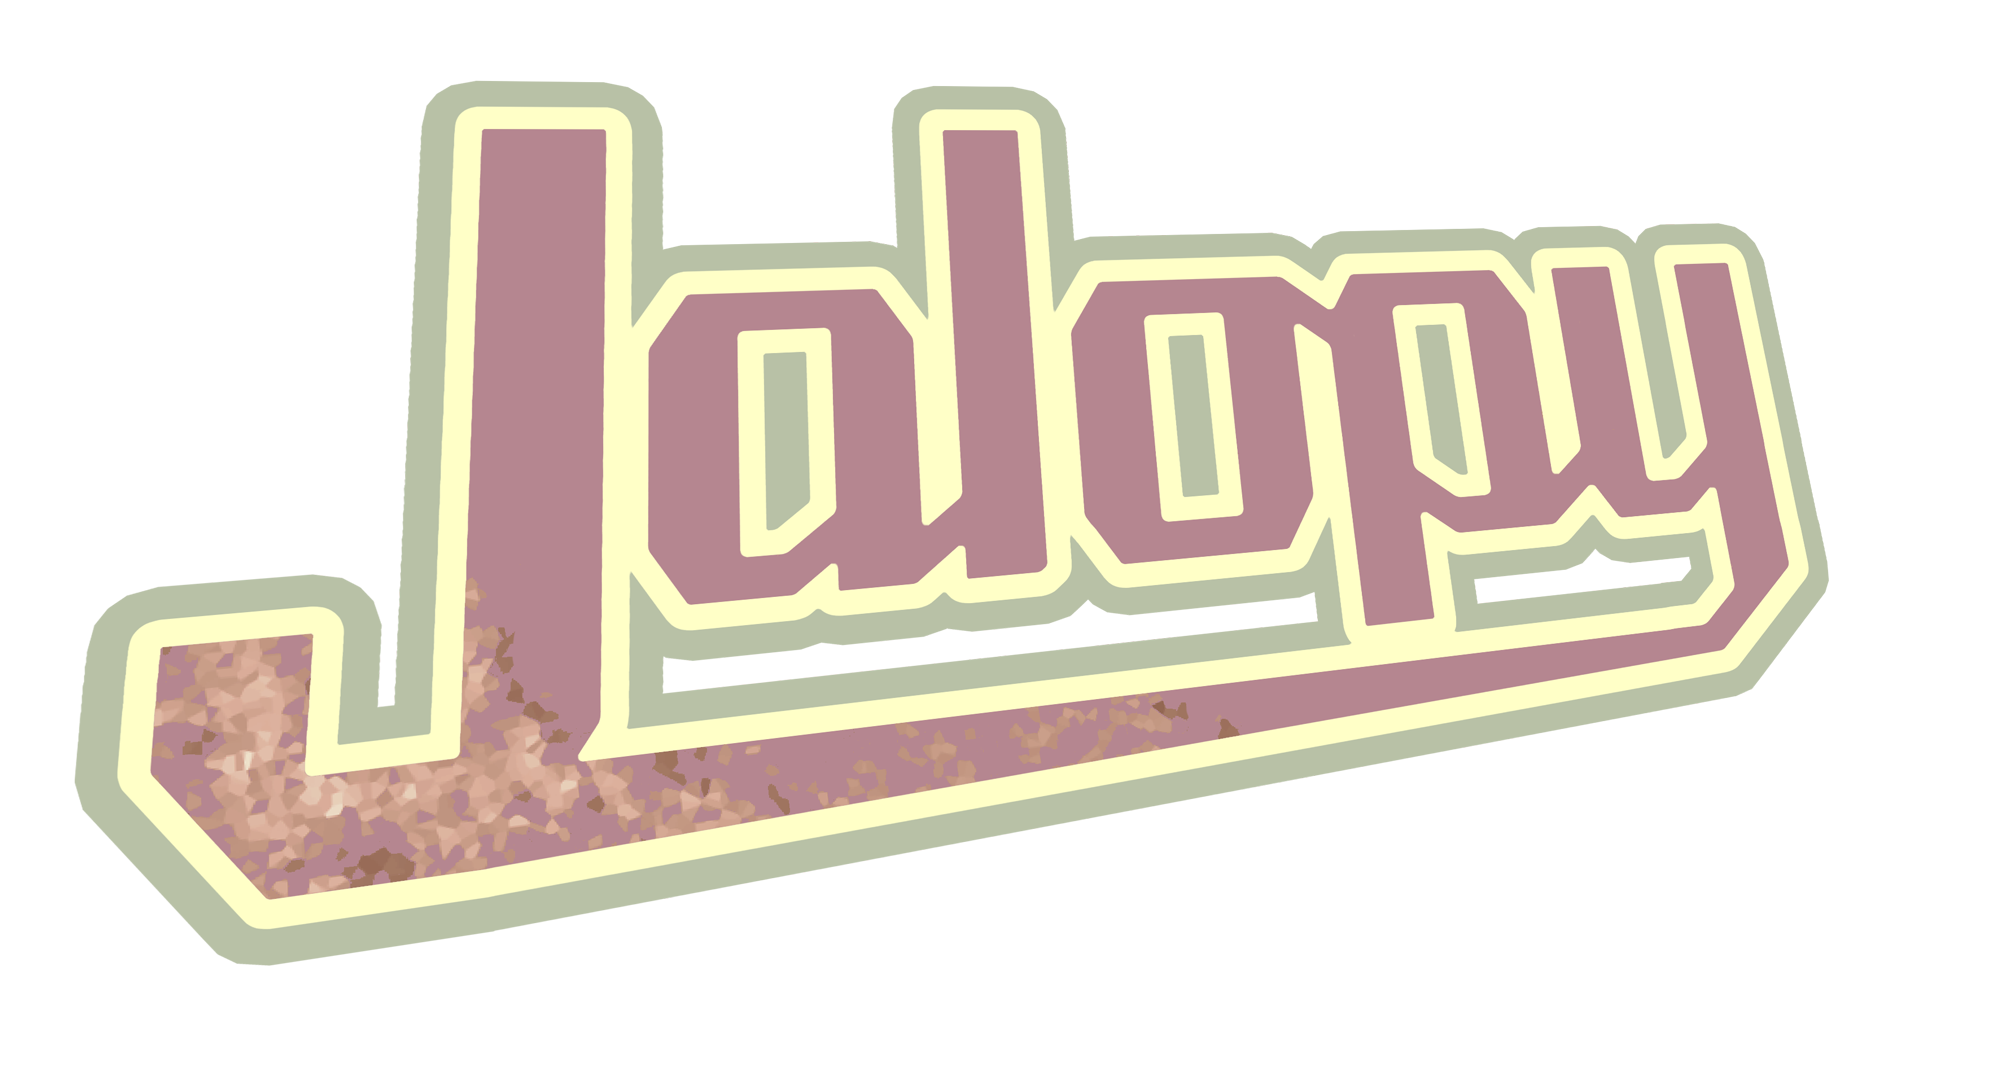 Jalopy_Final_logo_png